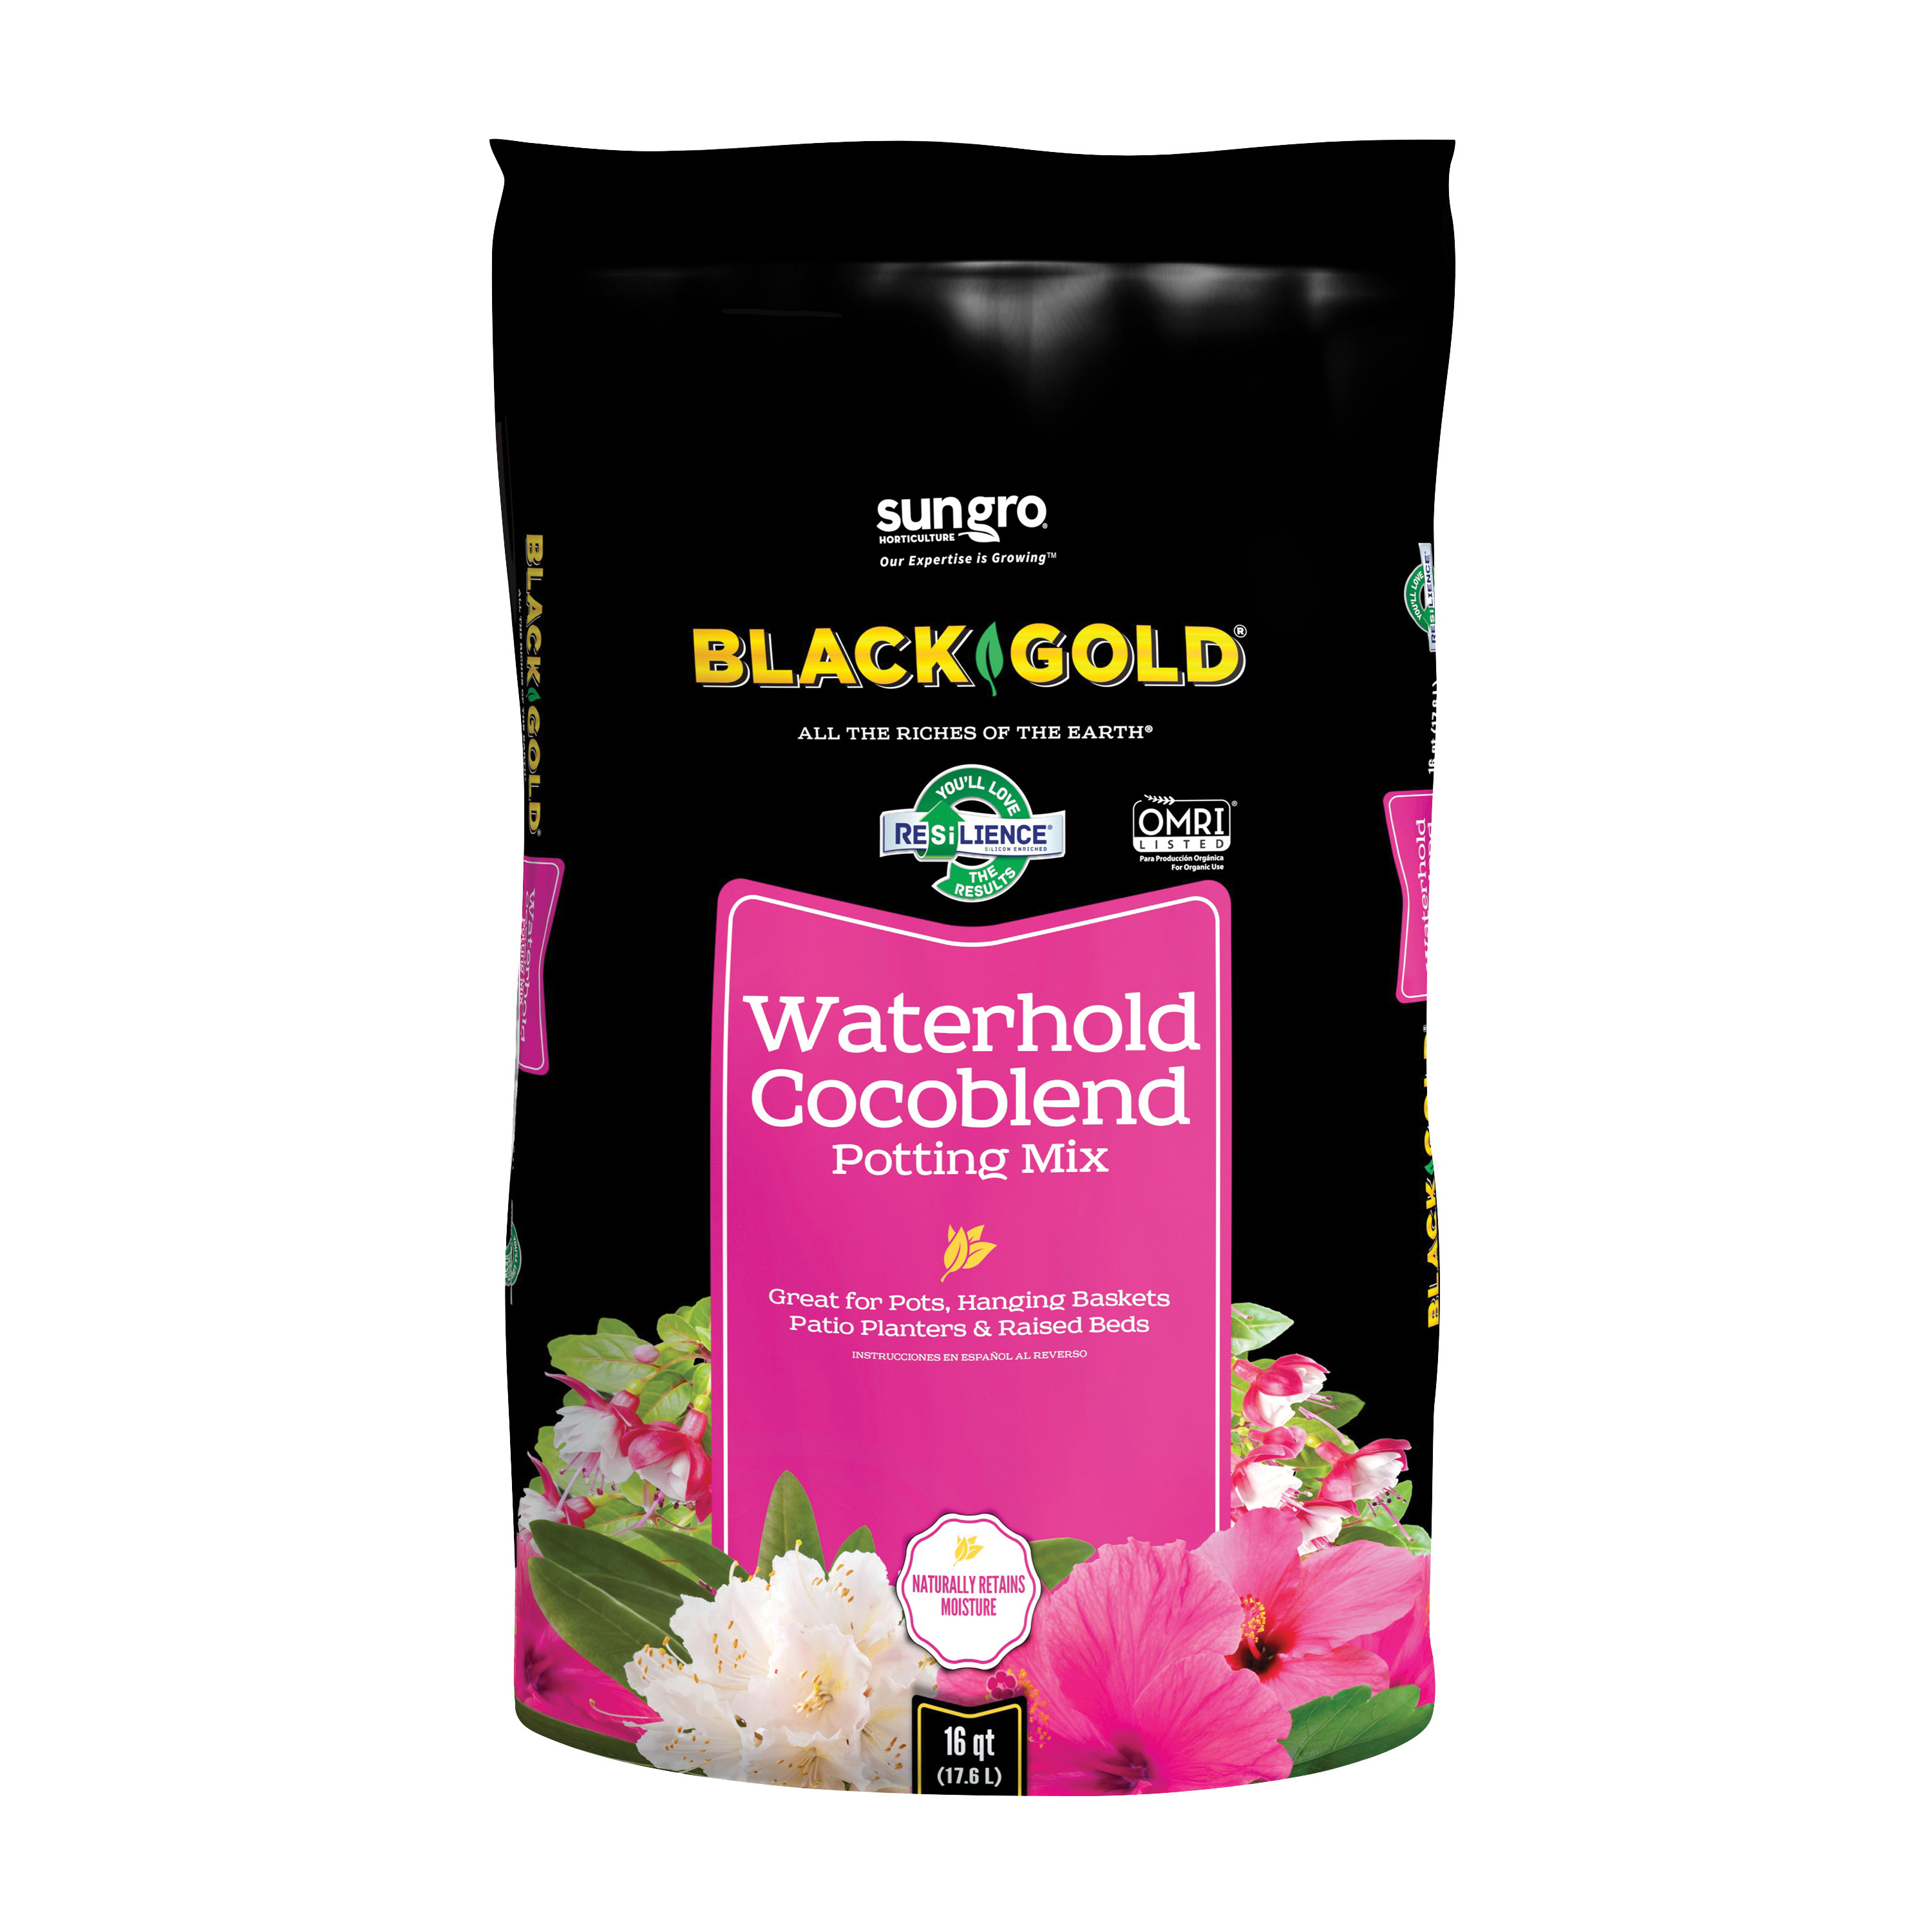 Picture of sun gro BLACK GOLD 1402030 16 QT P Potting Mix, Granular, Brown/Earthy, 120 Package, Bag